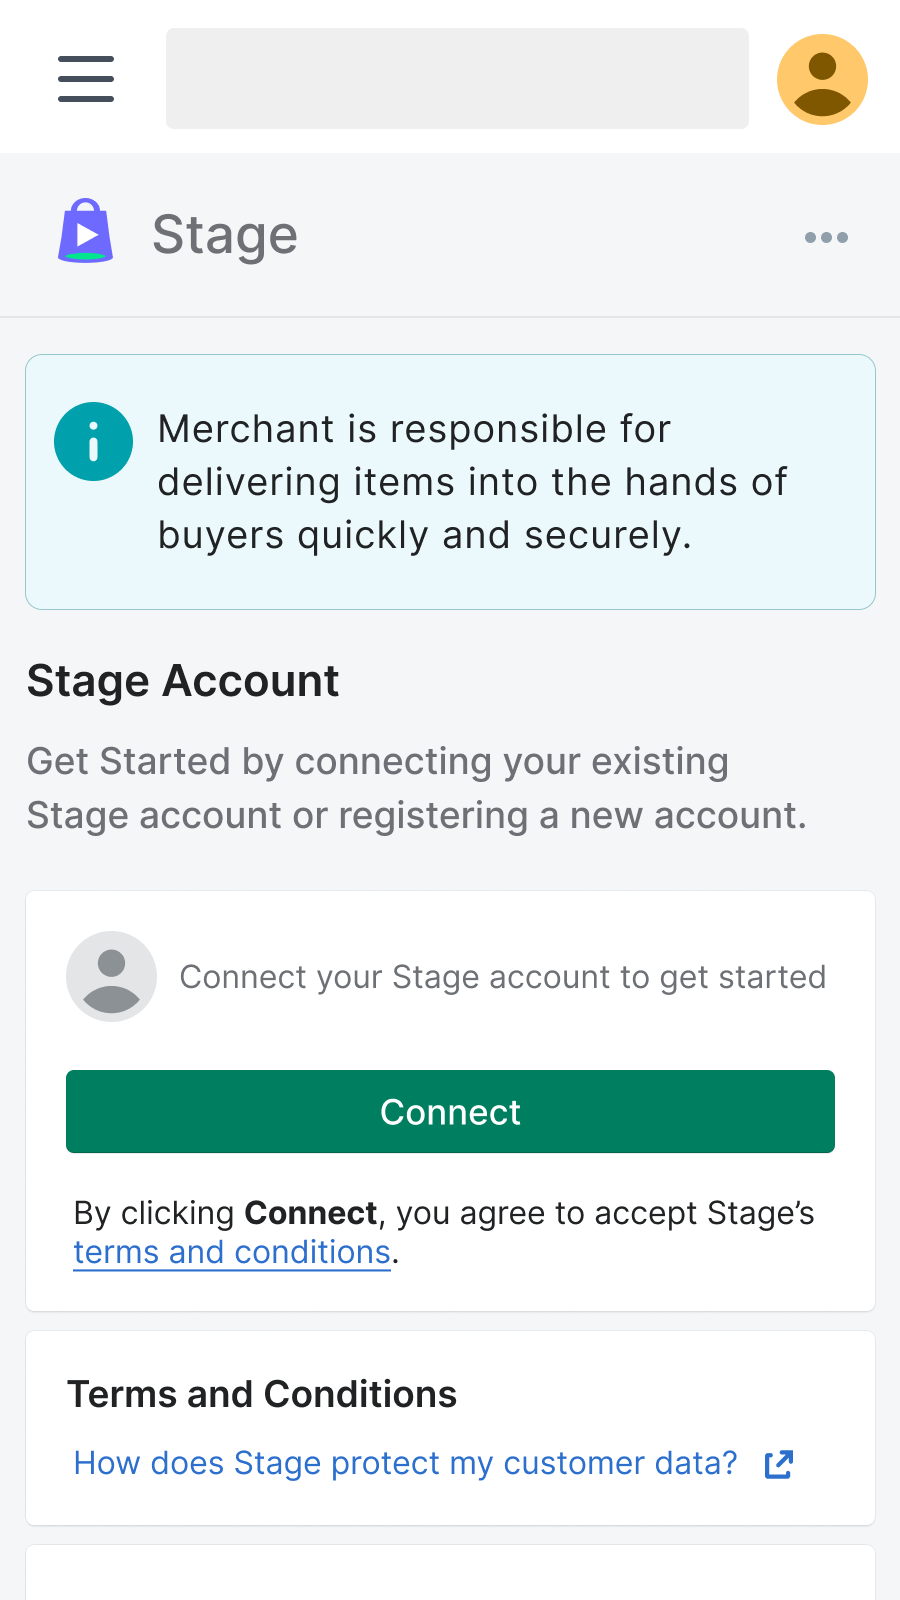 Connect with Stage by clicking on the connect button